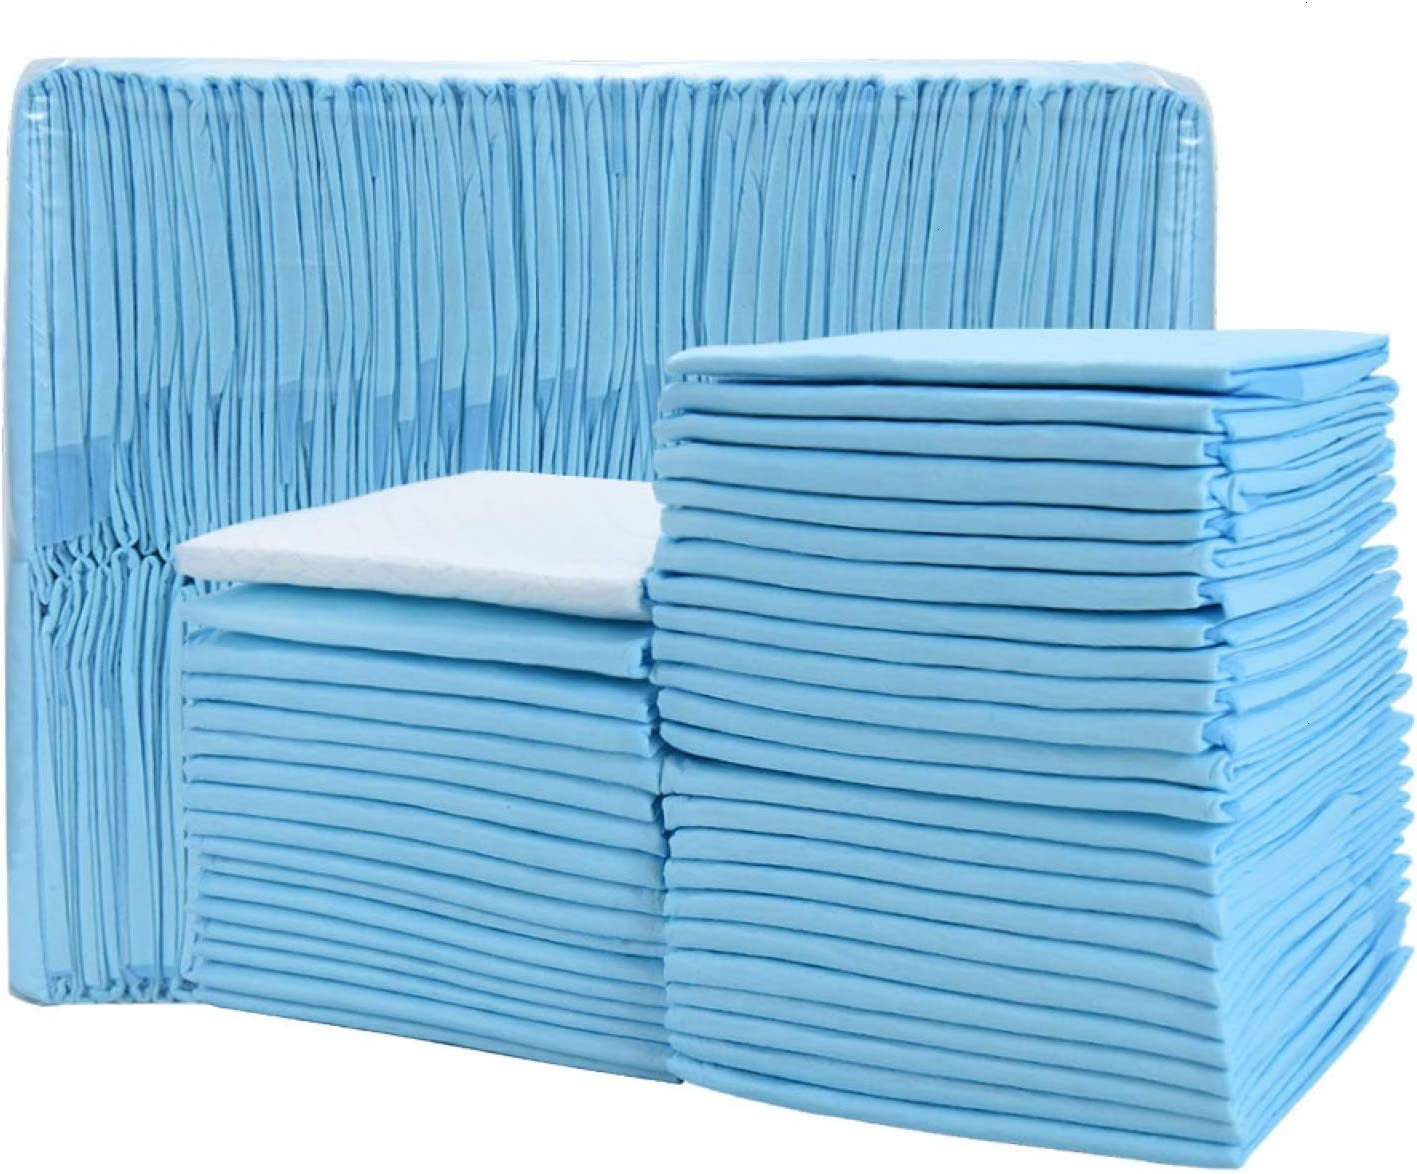 Timoo 100 PCS Disposable Changing Pad Leak-Proof Underpad Bed Table Protector Mat, Soft Non-Woven Fabric, 17 Inches x 13 Inches